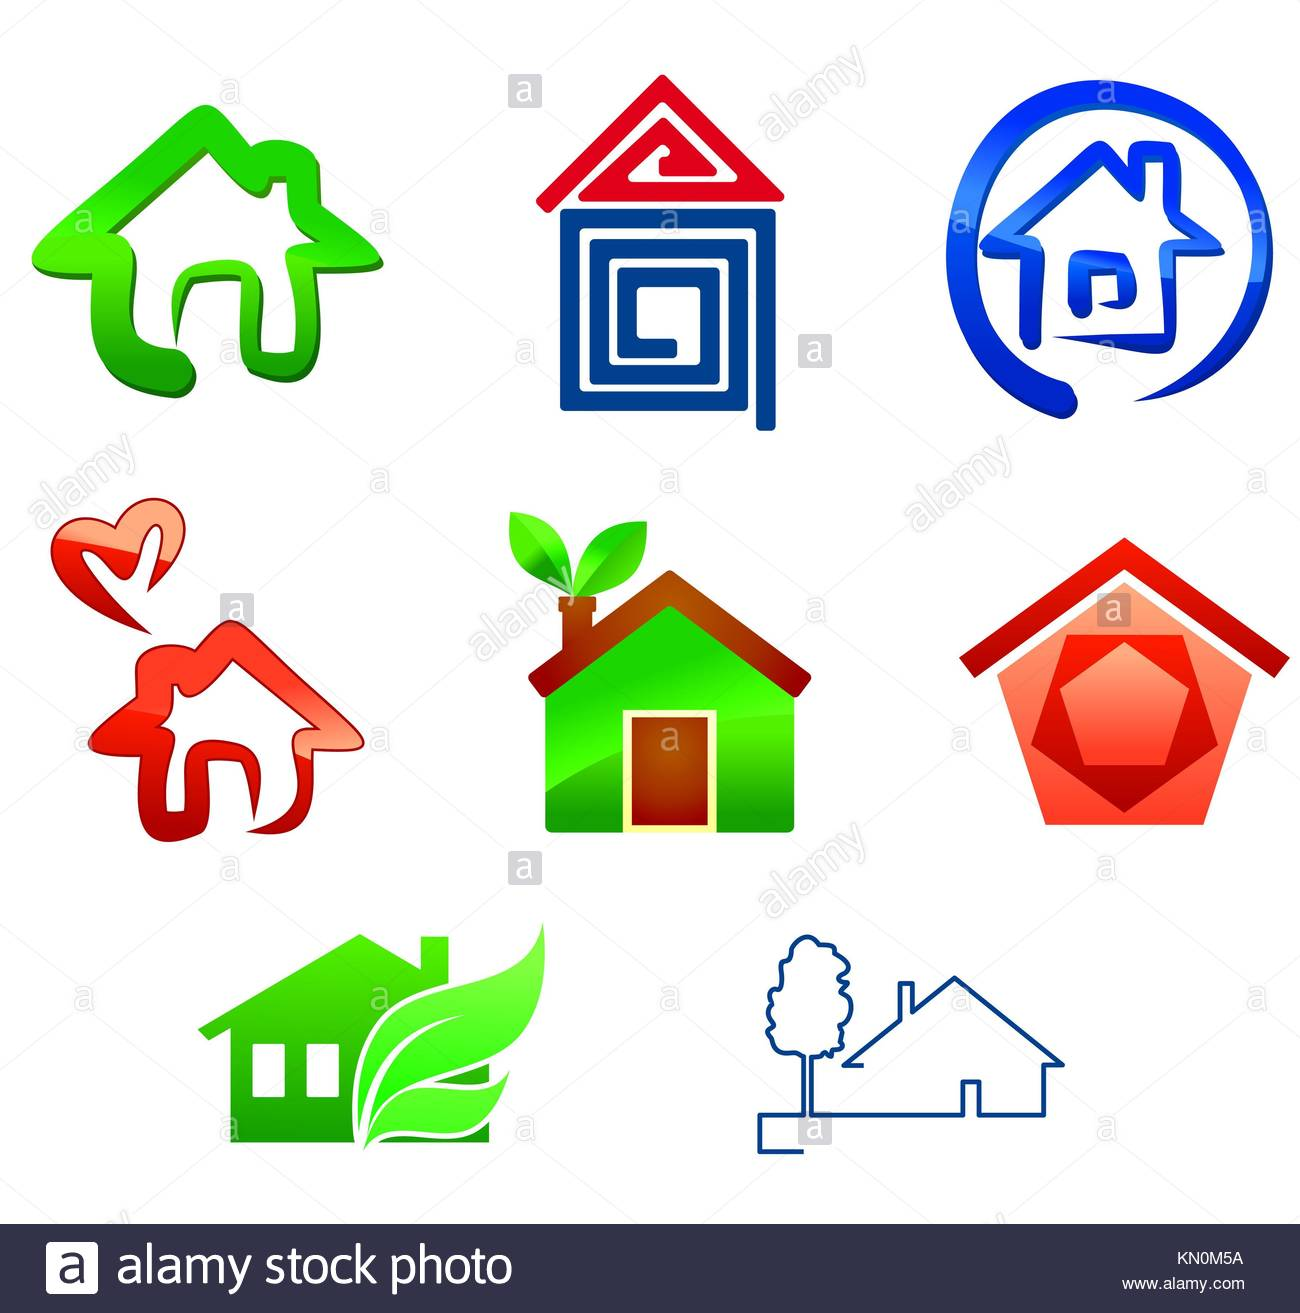 Real Estate Symbols For Design Isolated On White Stock Photo